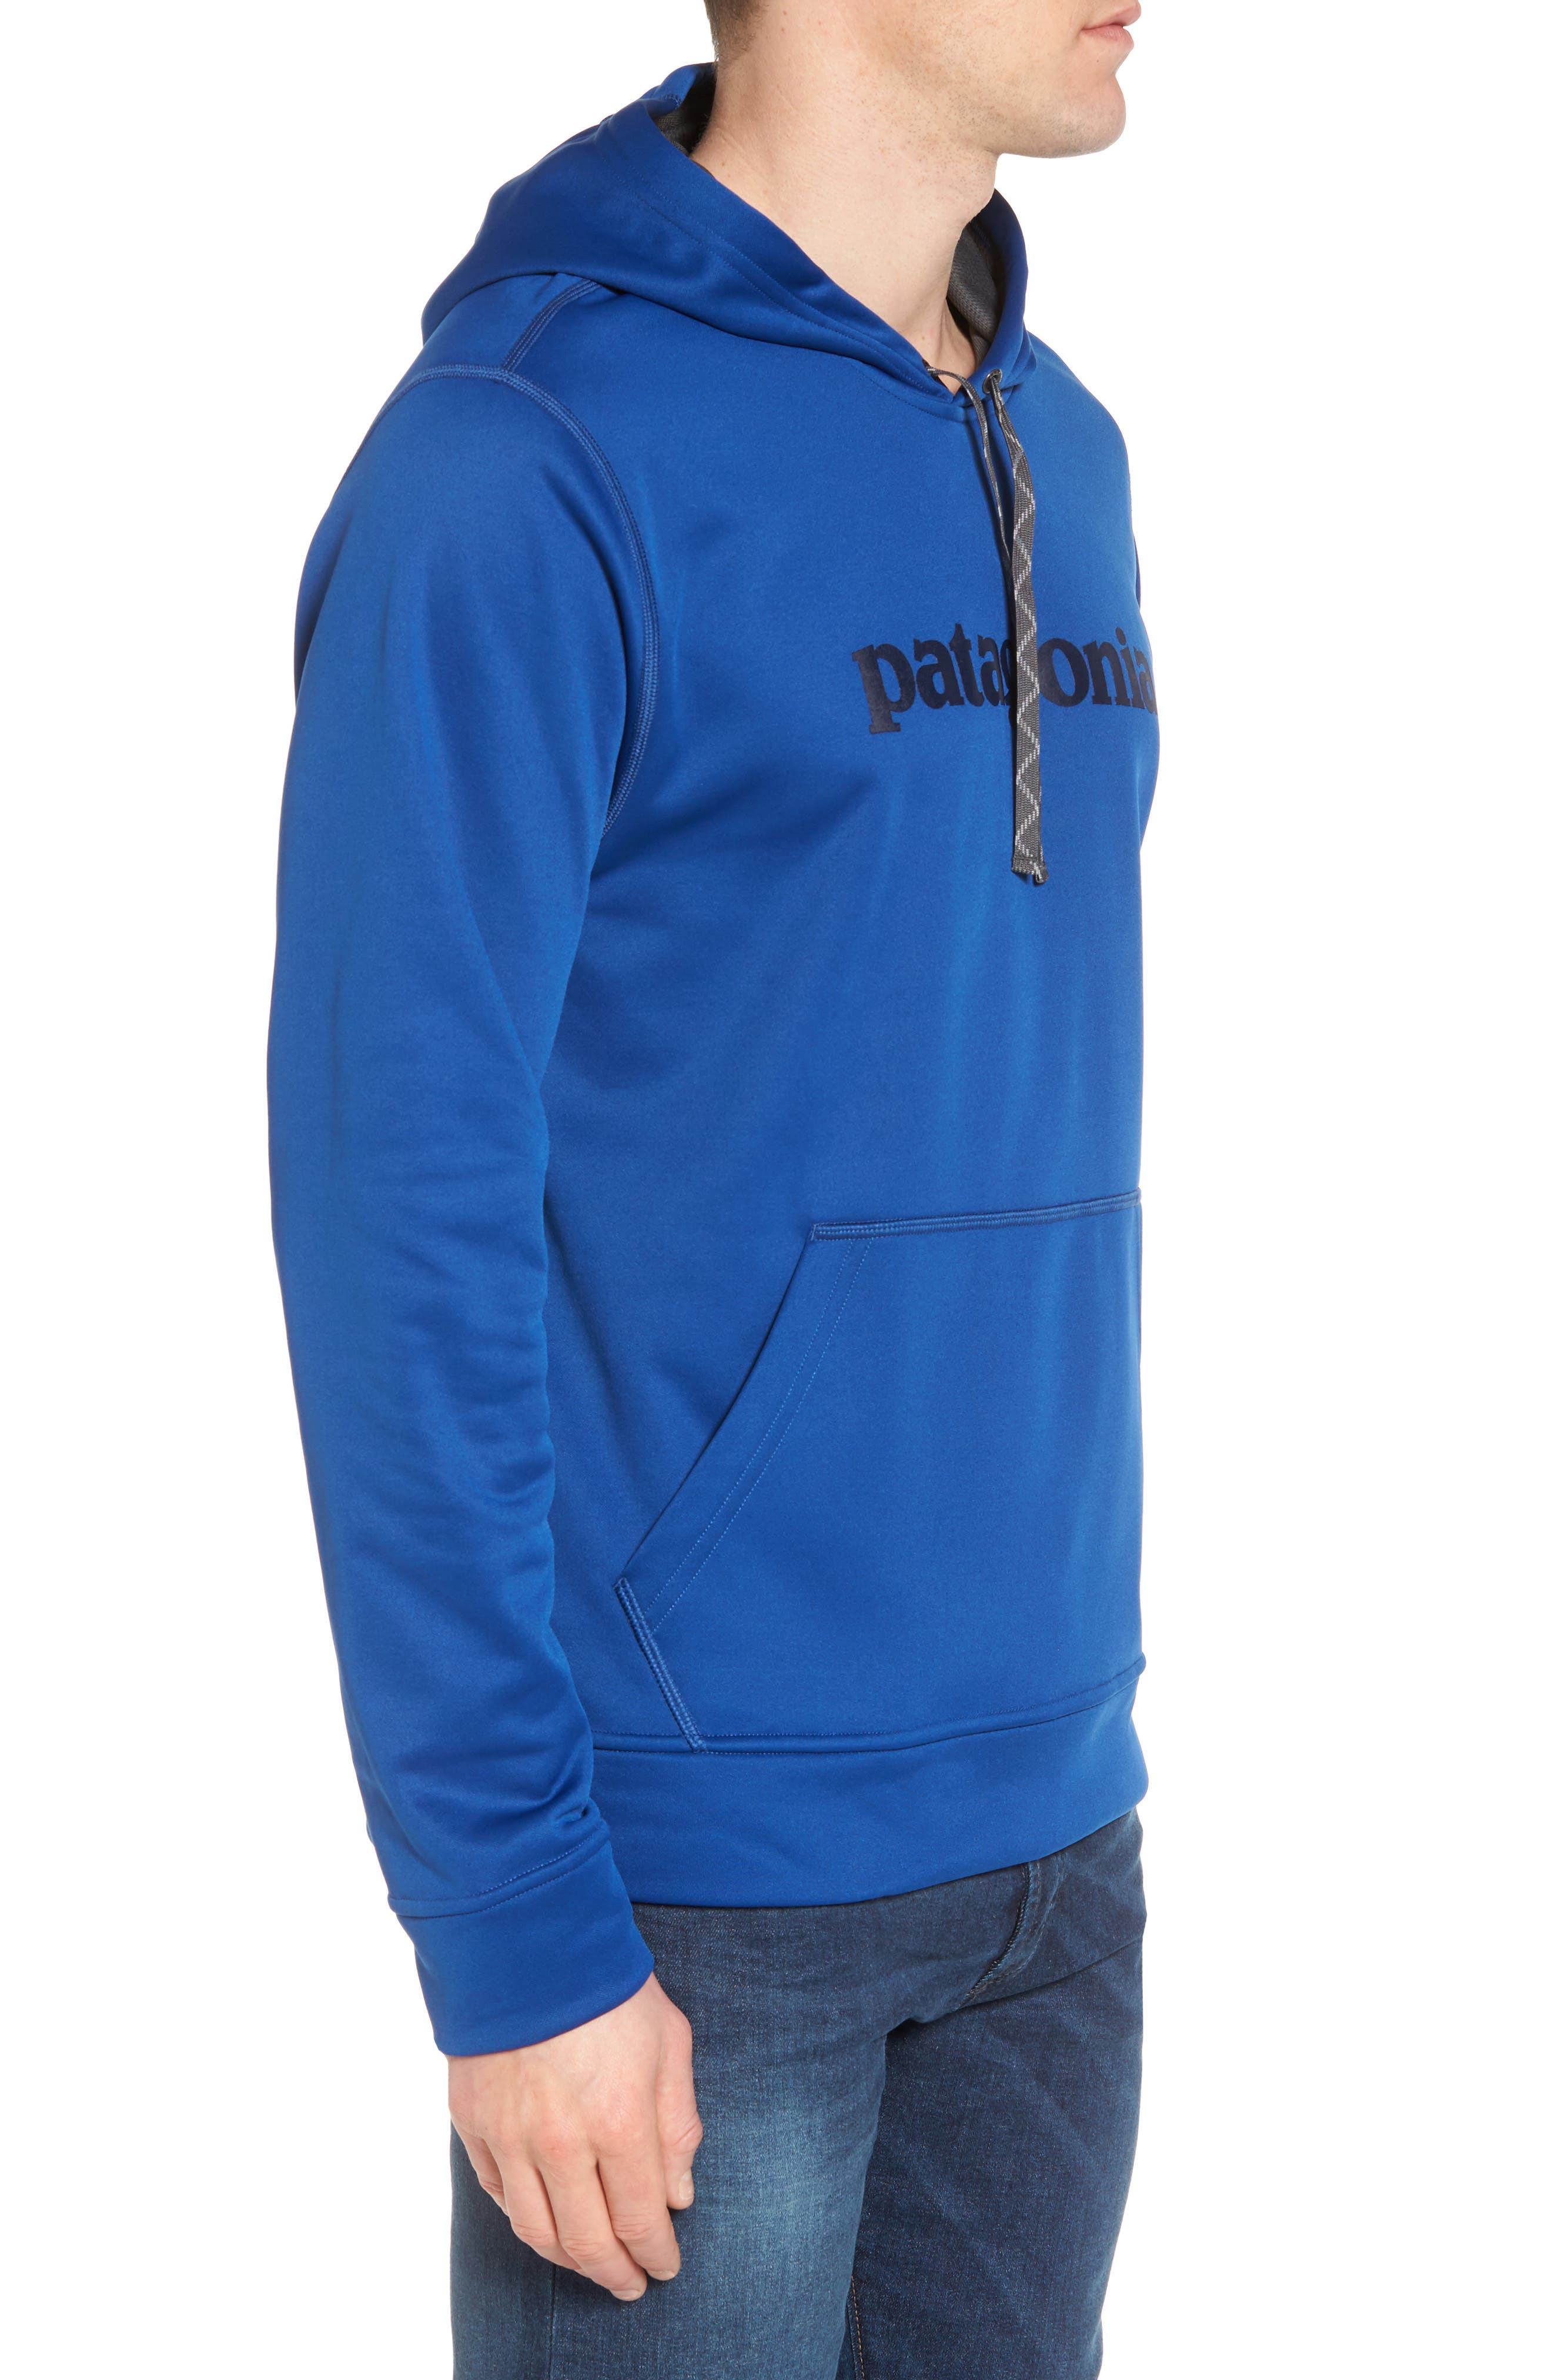 Polycycle Hoodie,                             Alternate thumbnail 6, color,